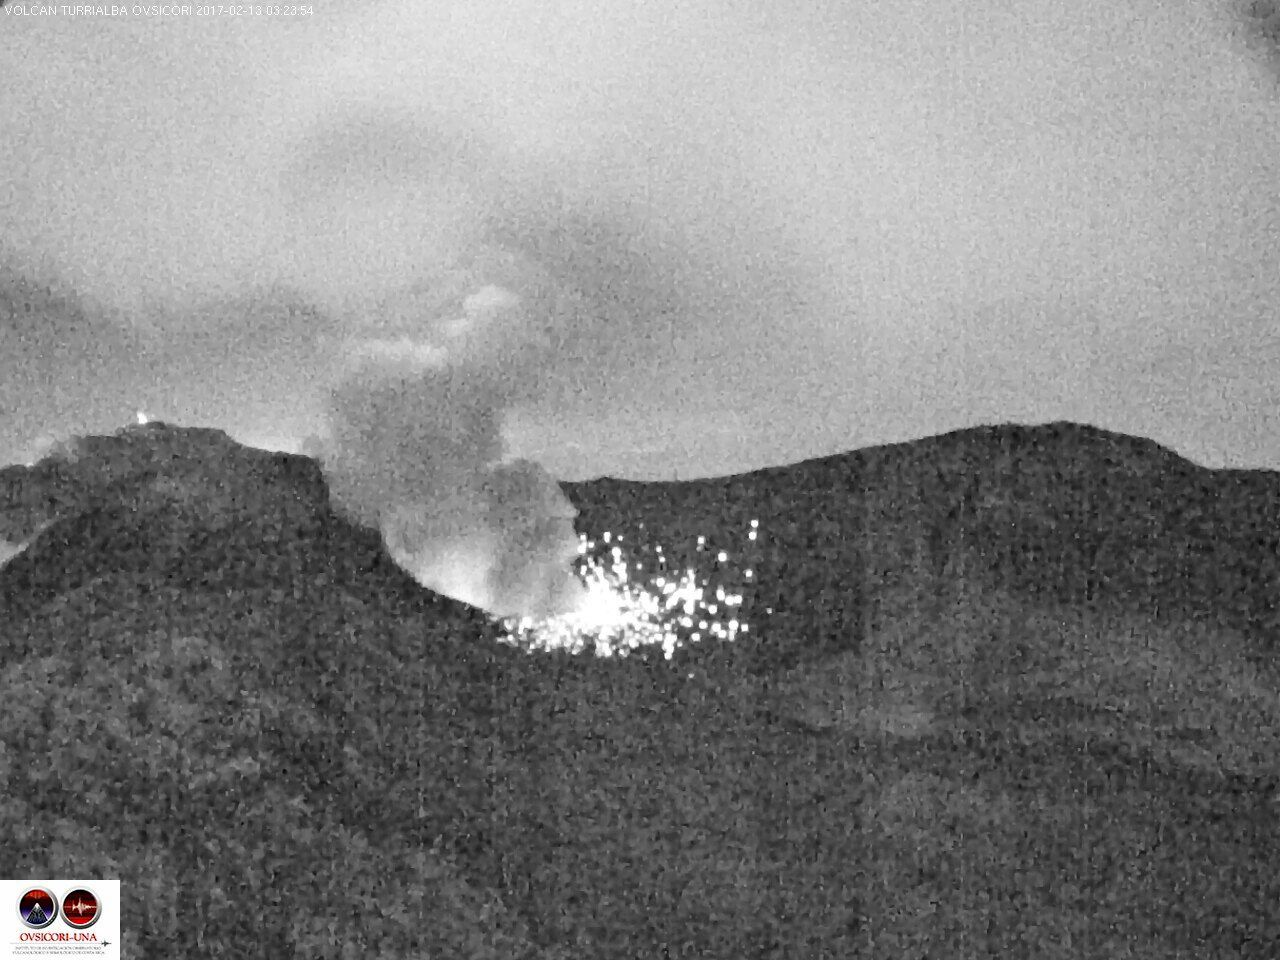 Turrialba 13.02.2017 / 3h24 -  photo webcam Ovsicori (en IR)